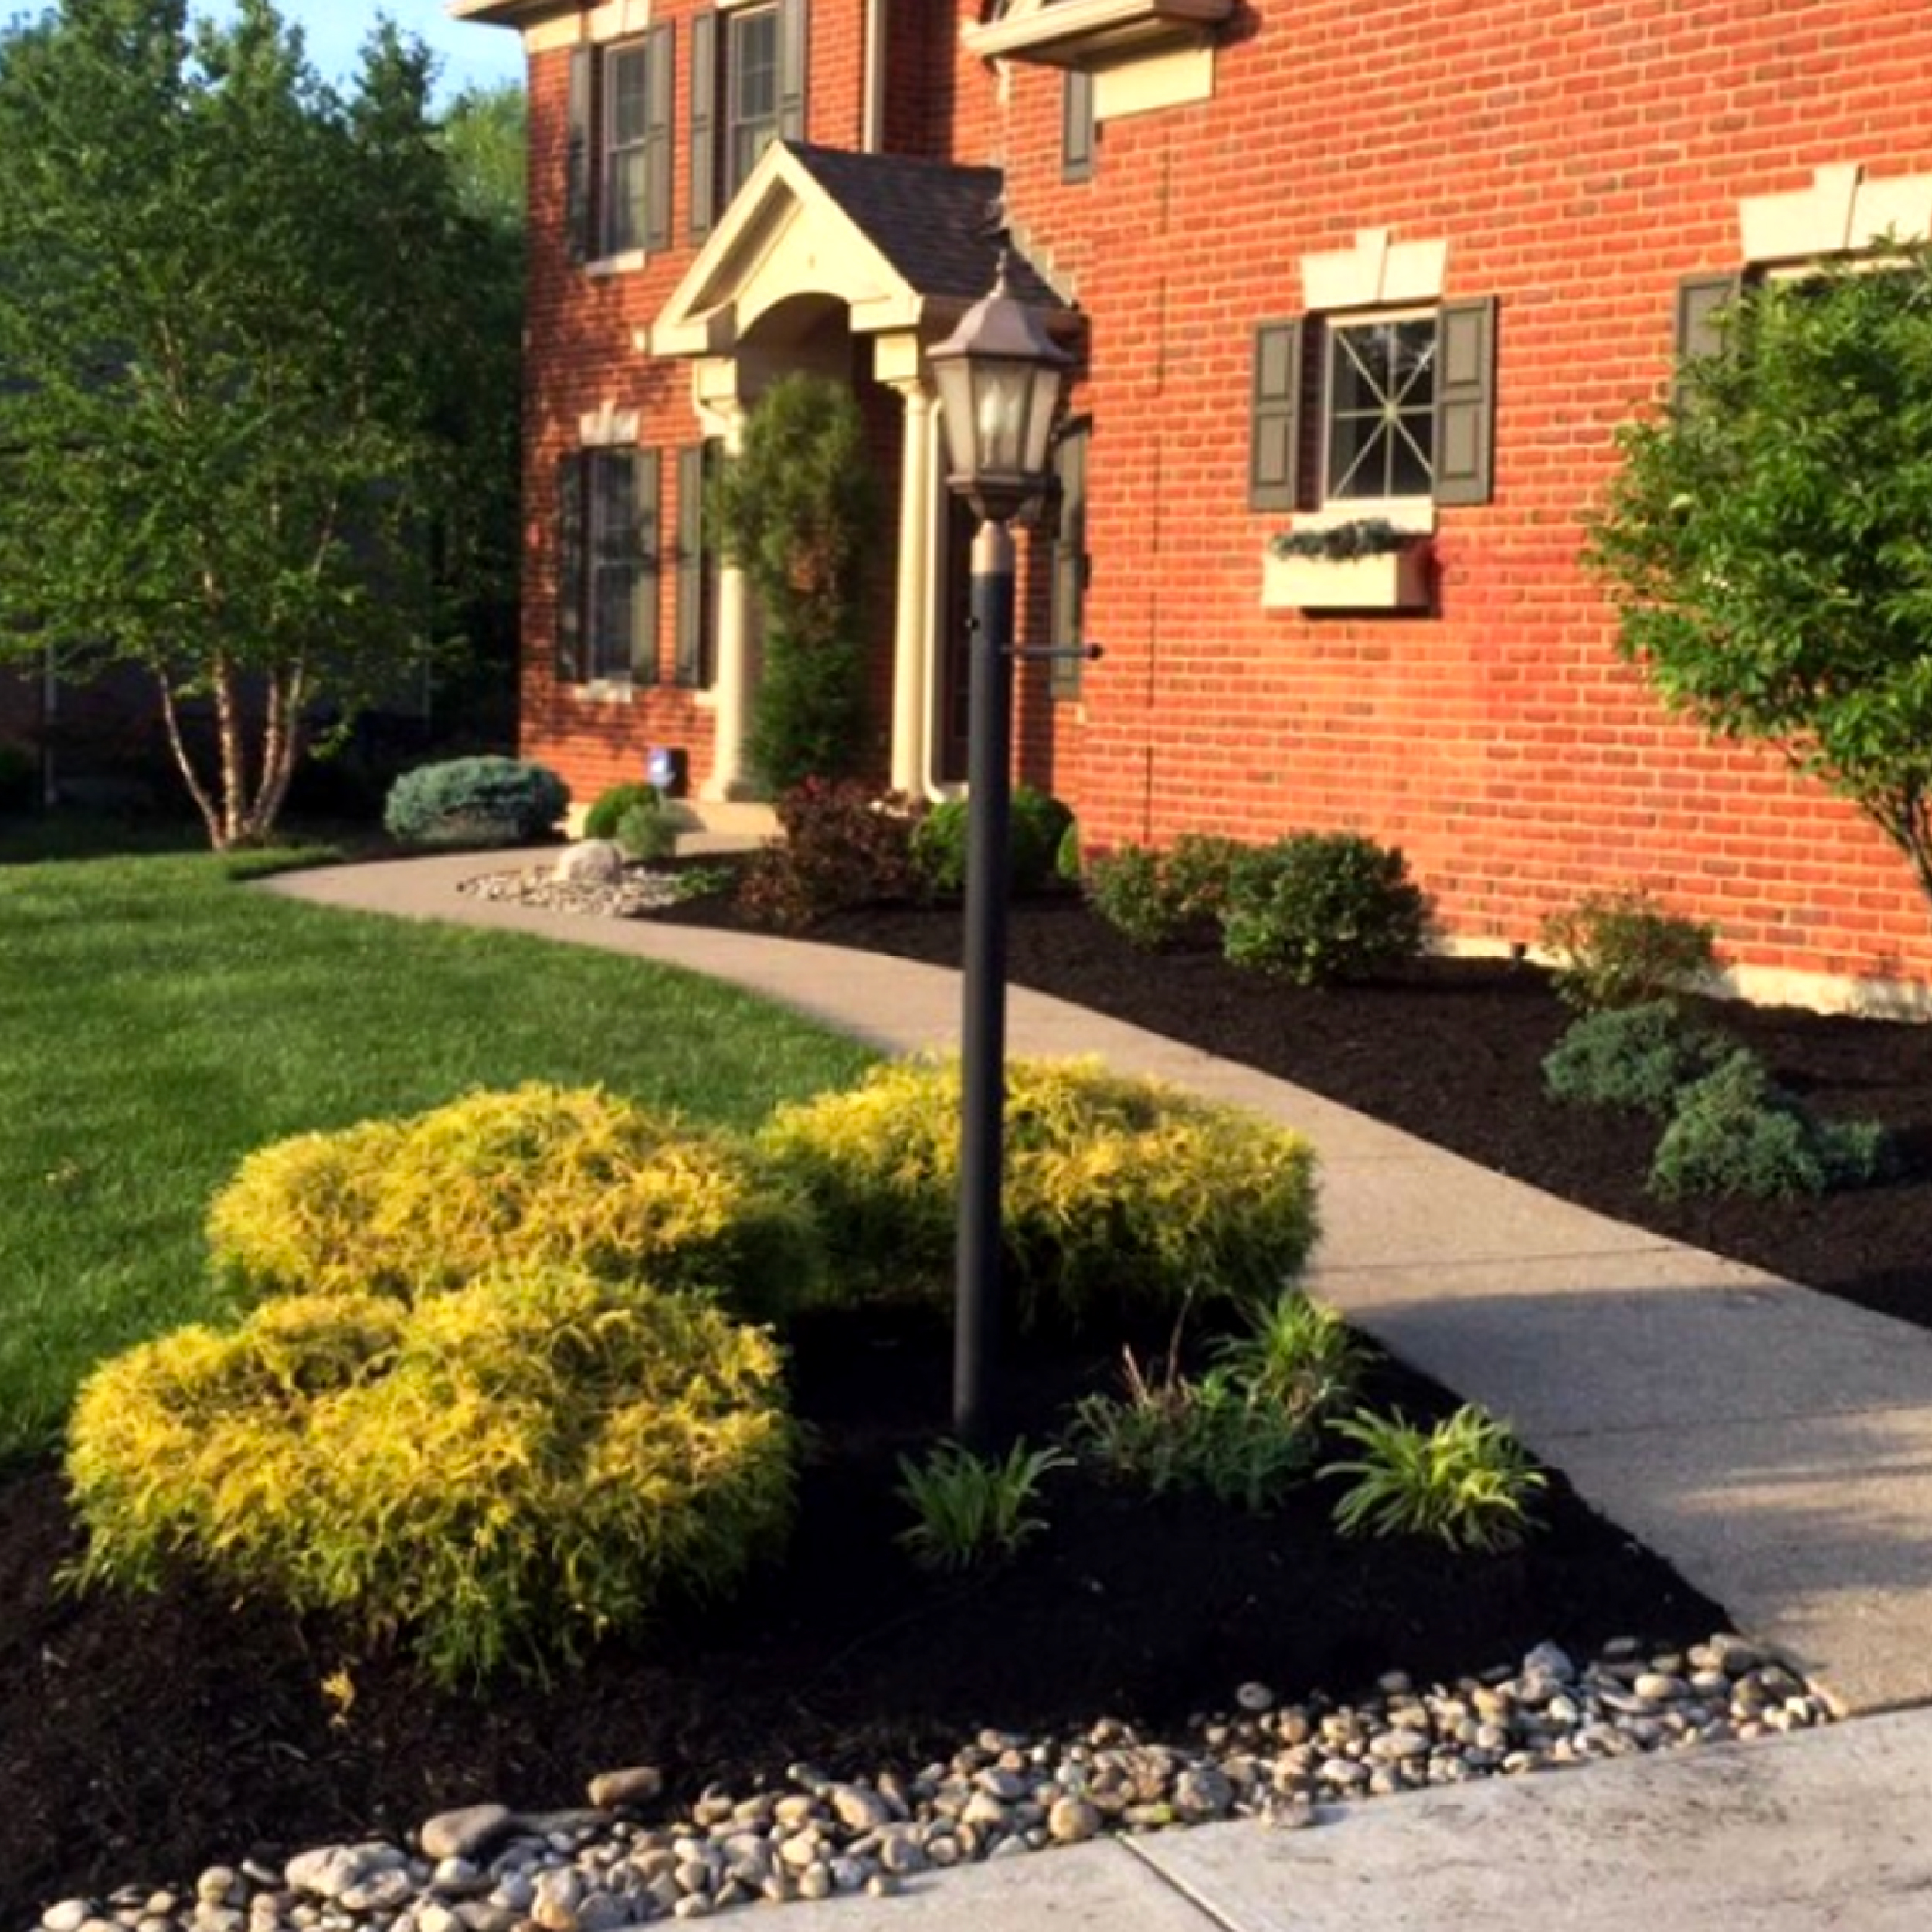 Residential Home Cleanup Landscape